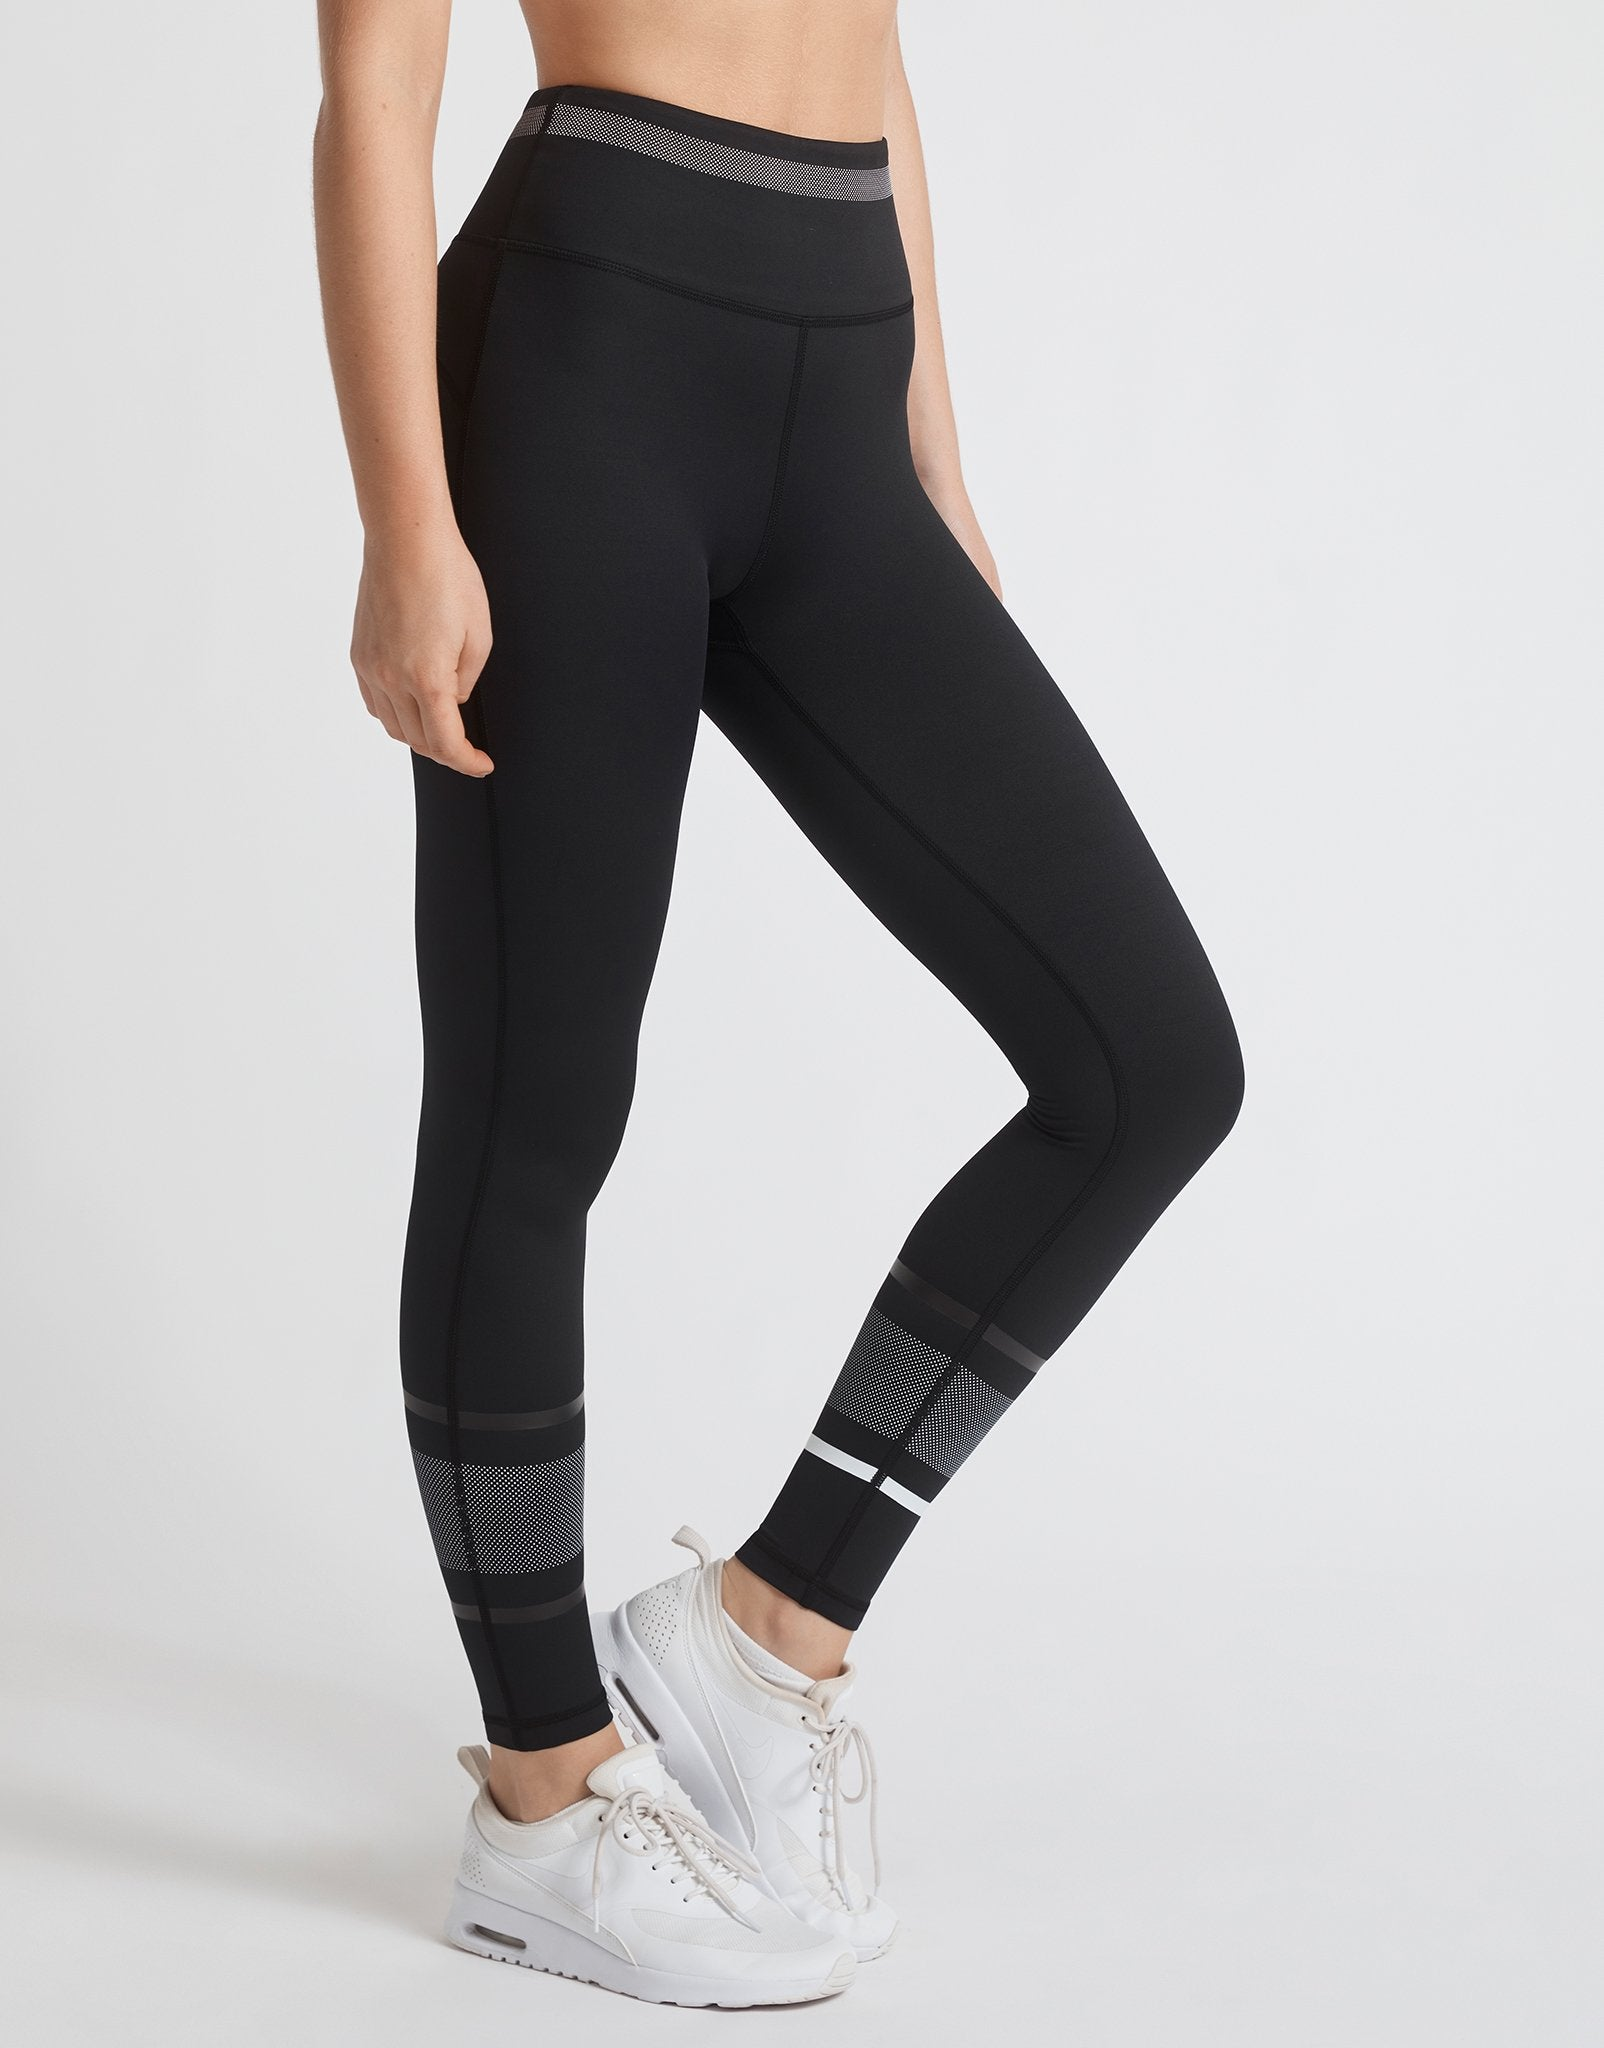 Lilybod-Jordan-High-Waist-Full-Length-Legging-side.jpg